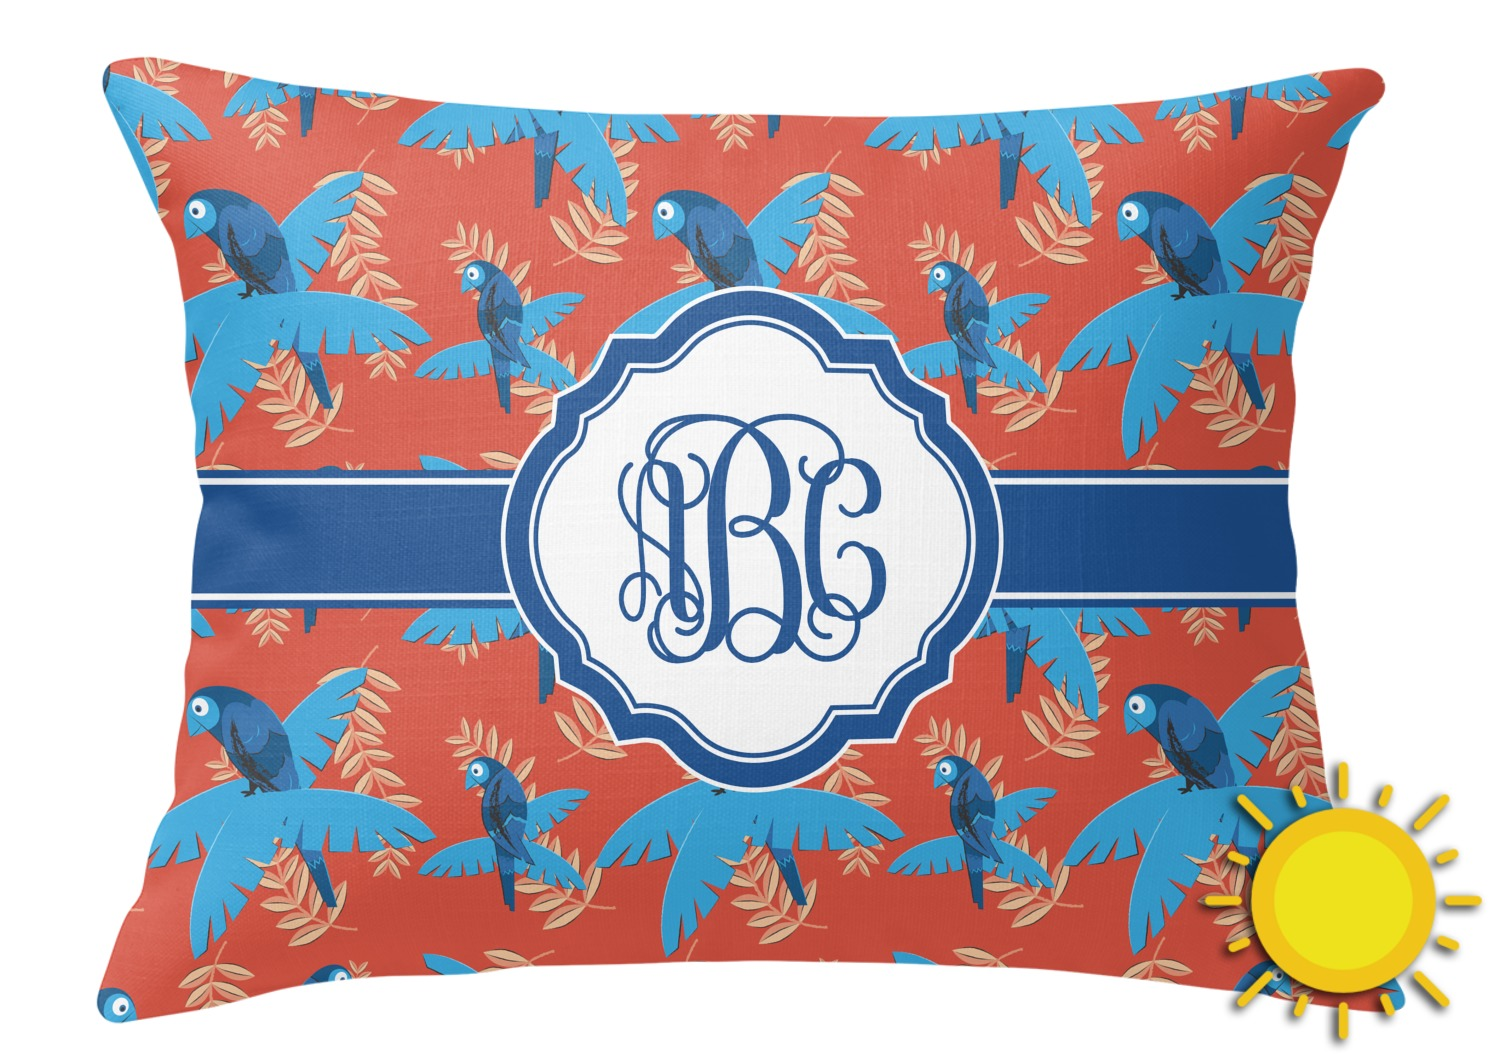 Blue Rectangular Throw Pillows : Blue Parrot Outdoor Throw Pillow (Rectangular) (Personalized) - YouCustomizeIt